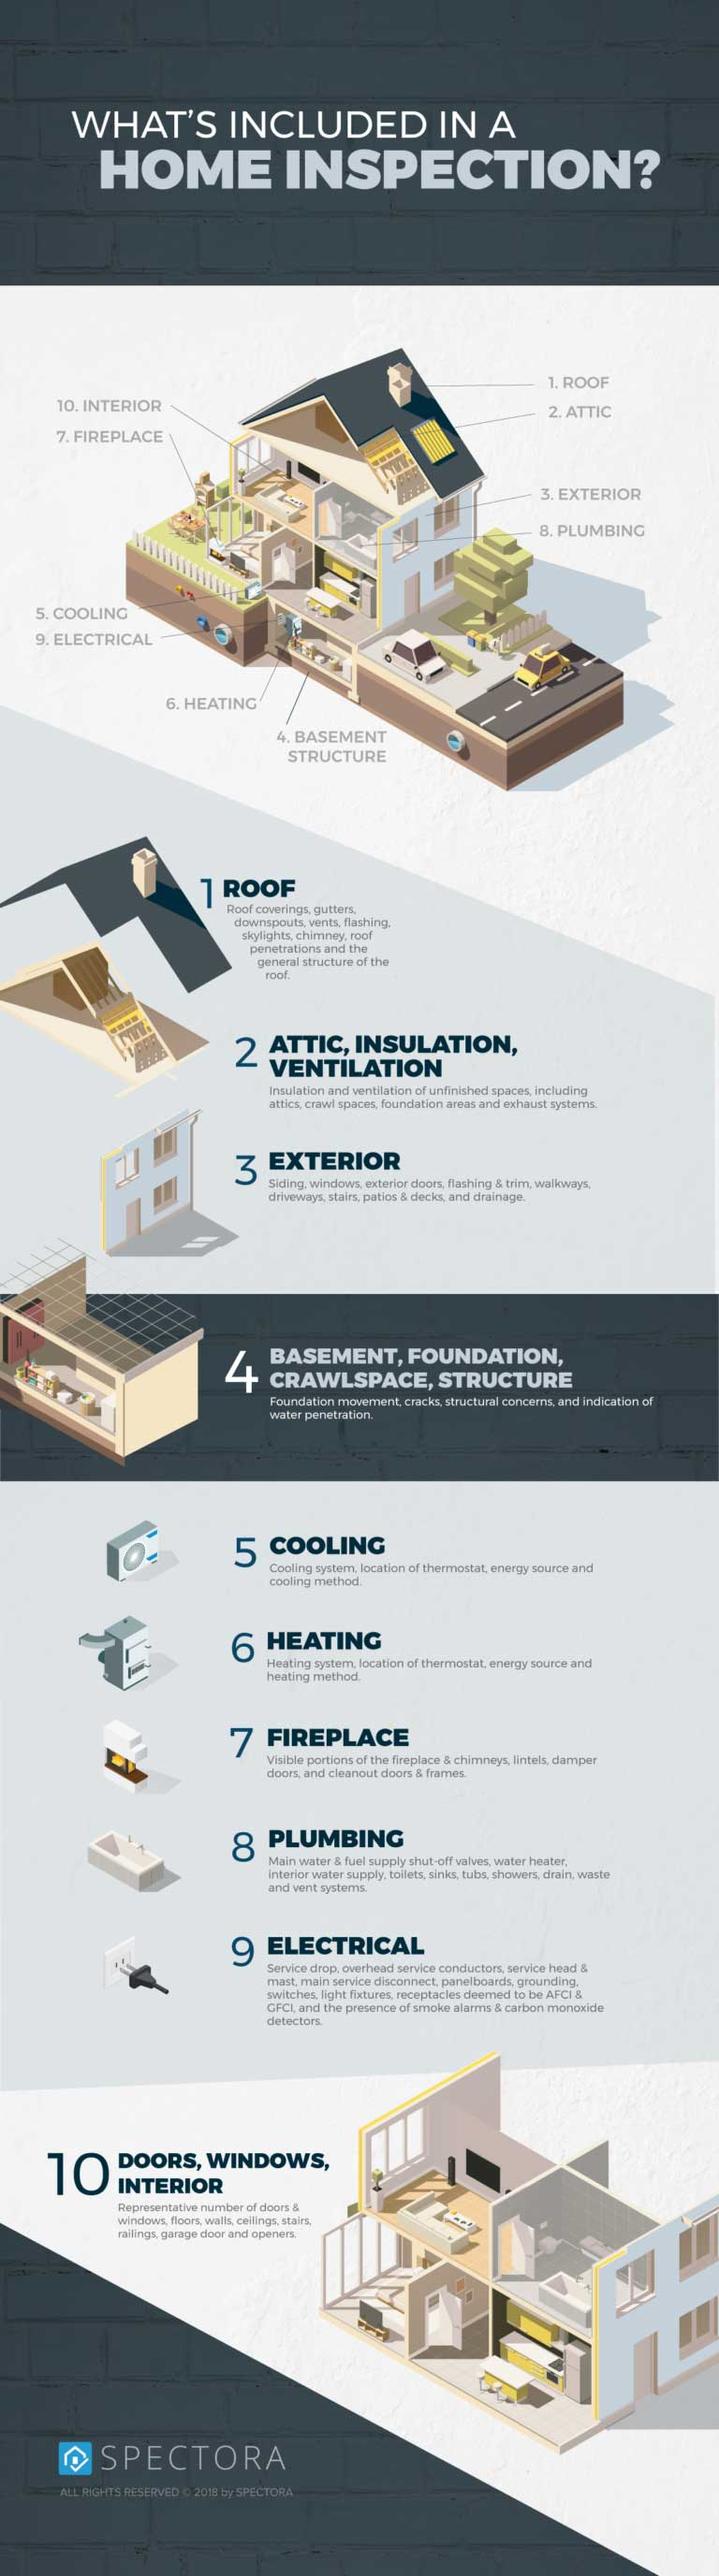 Eagle Vision Home Inspections What to Expect from a home inspection